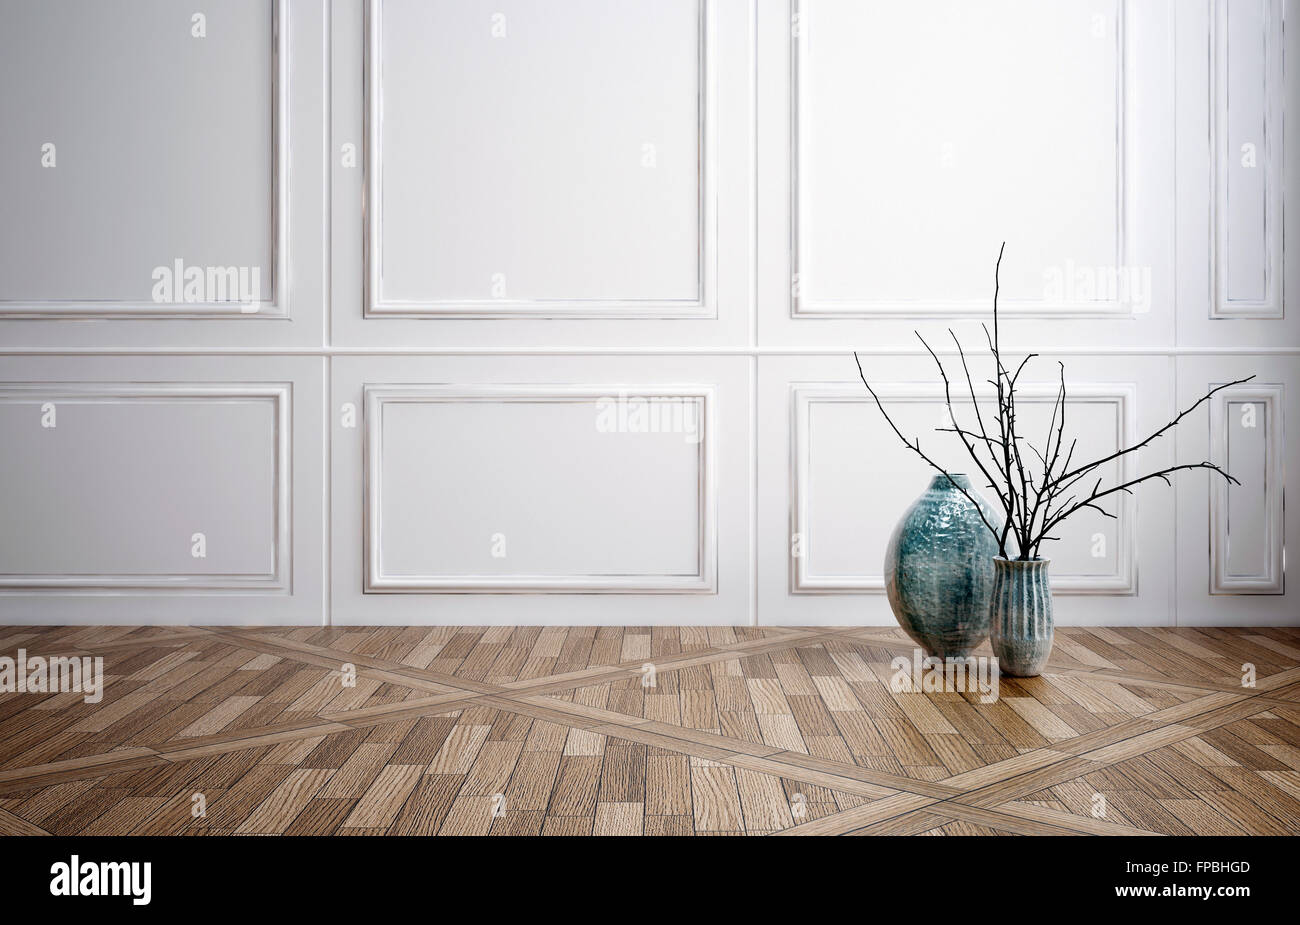 Superieur Classic Stylish Room Interior Decor With Wooden Wainscoting Panelling, A  Decorative Patterned Parquet Floor And Minimalist Vase